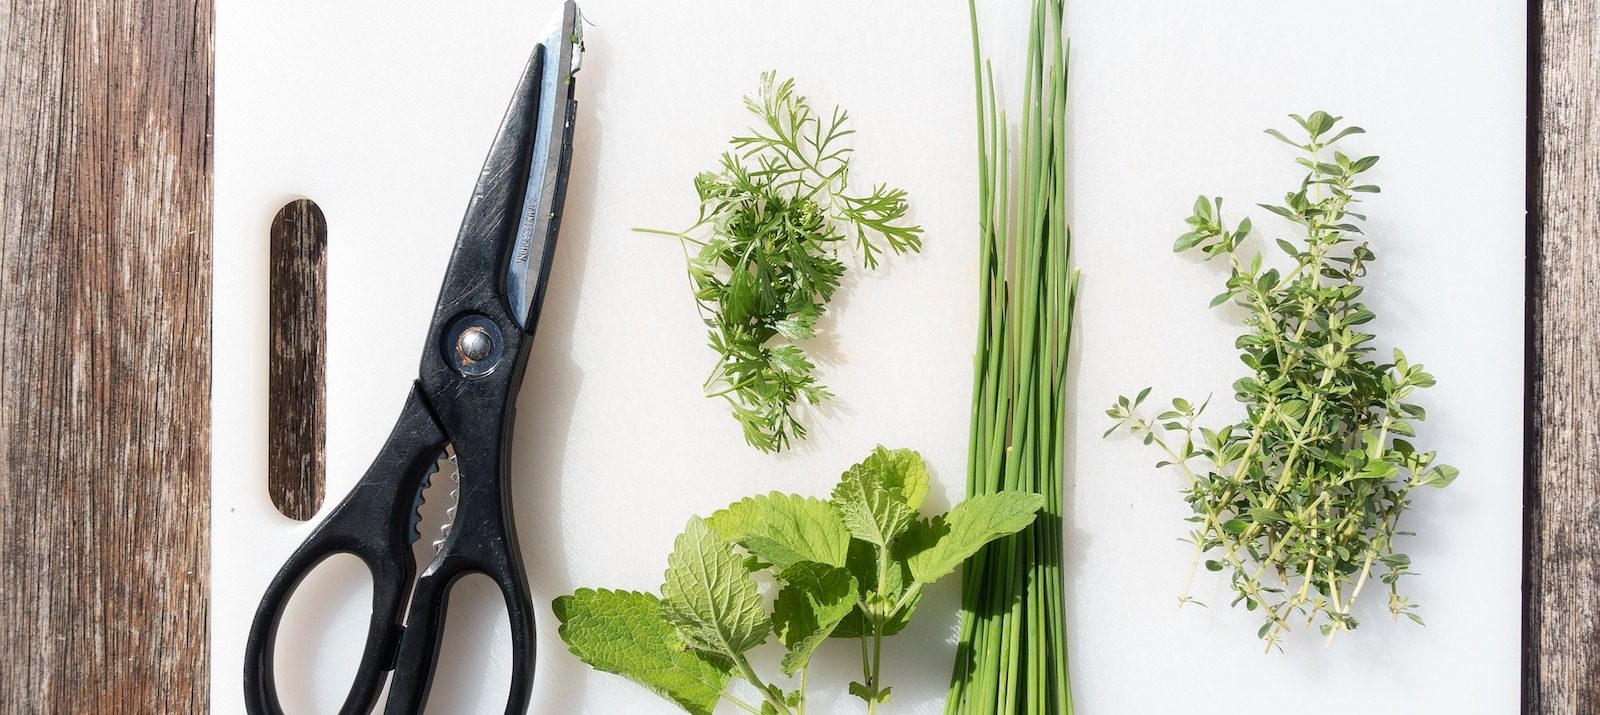 Growing Herbs Indoors How To Grow An Herb Garden In Your Apartment